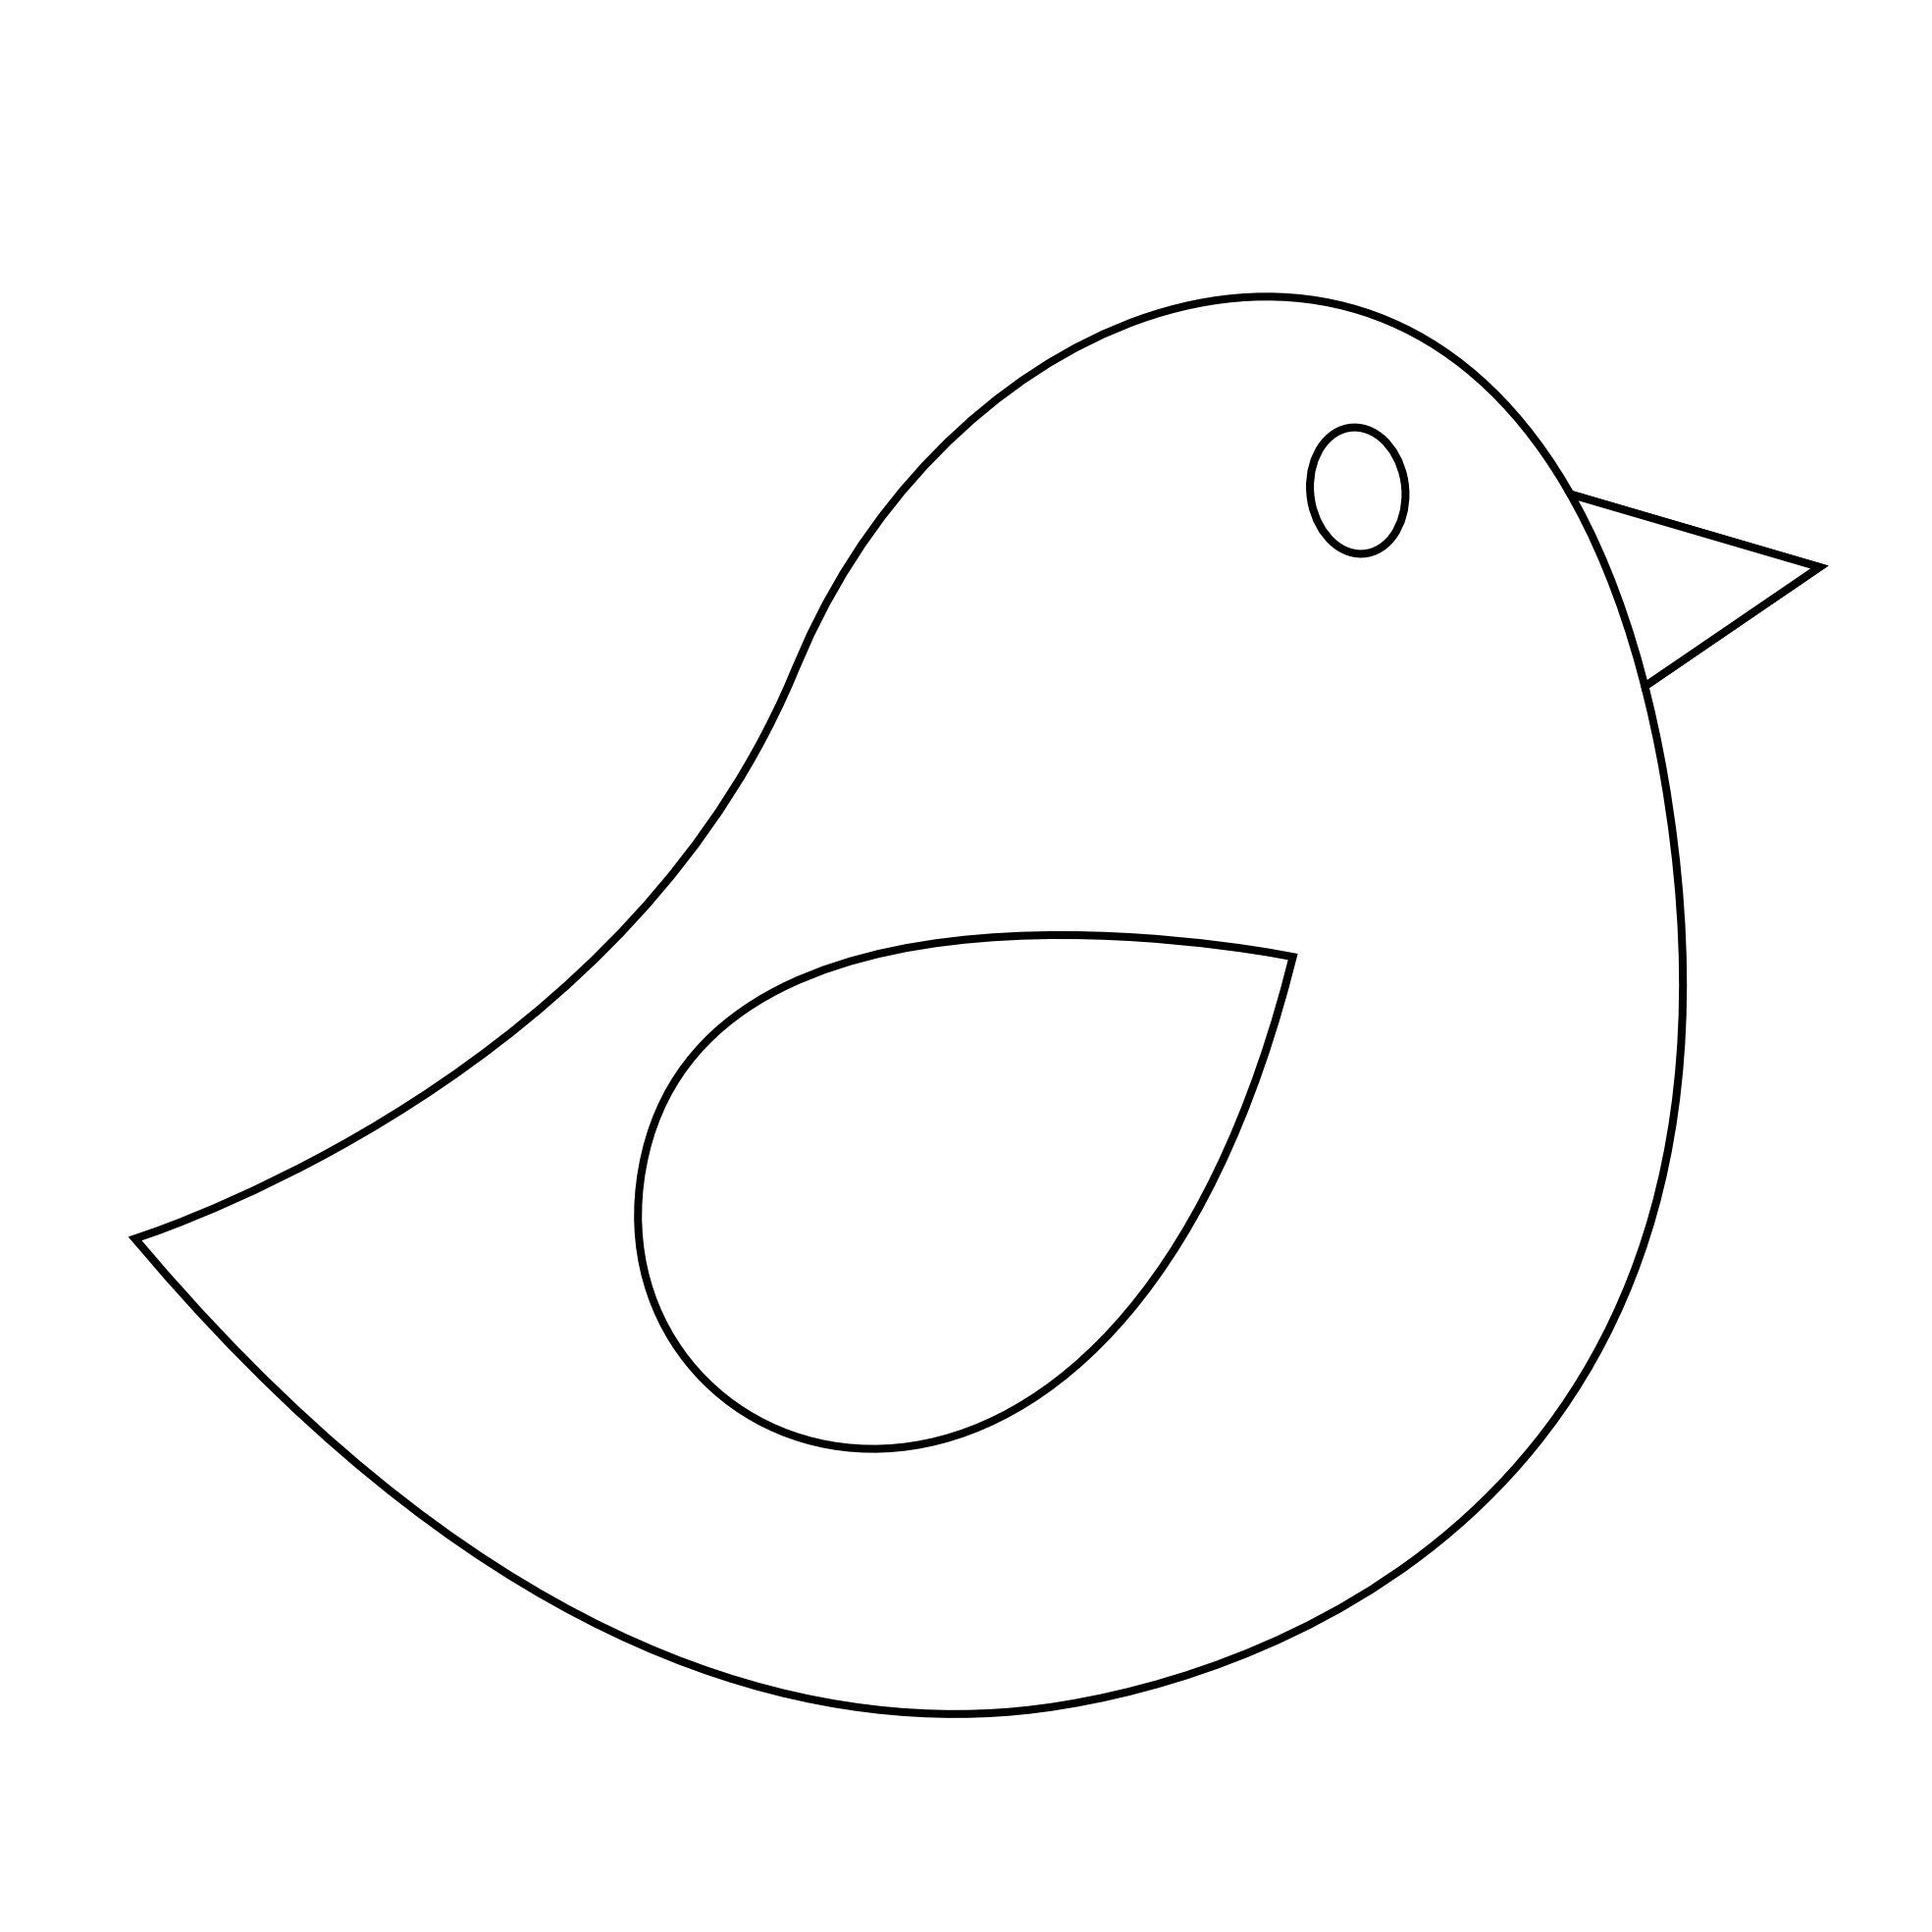 Colorful Animal Bird Twitter Black White Line Art Scalable Vector